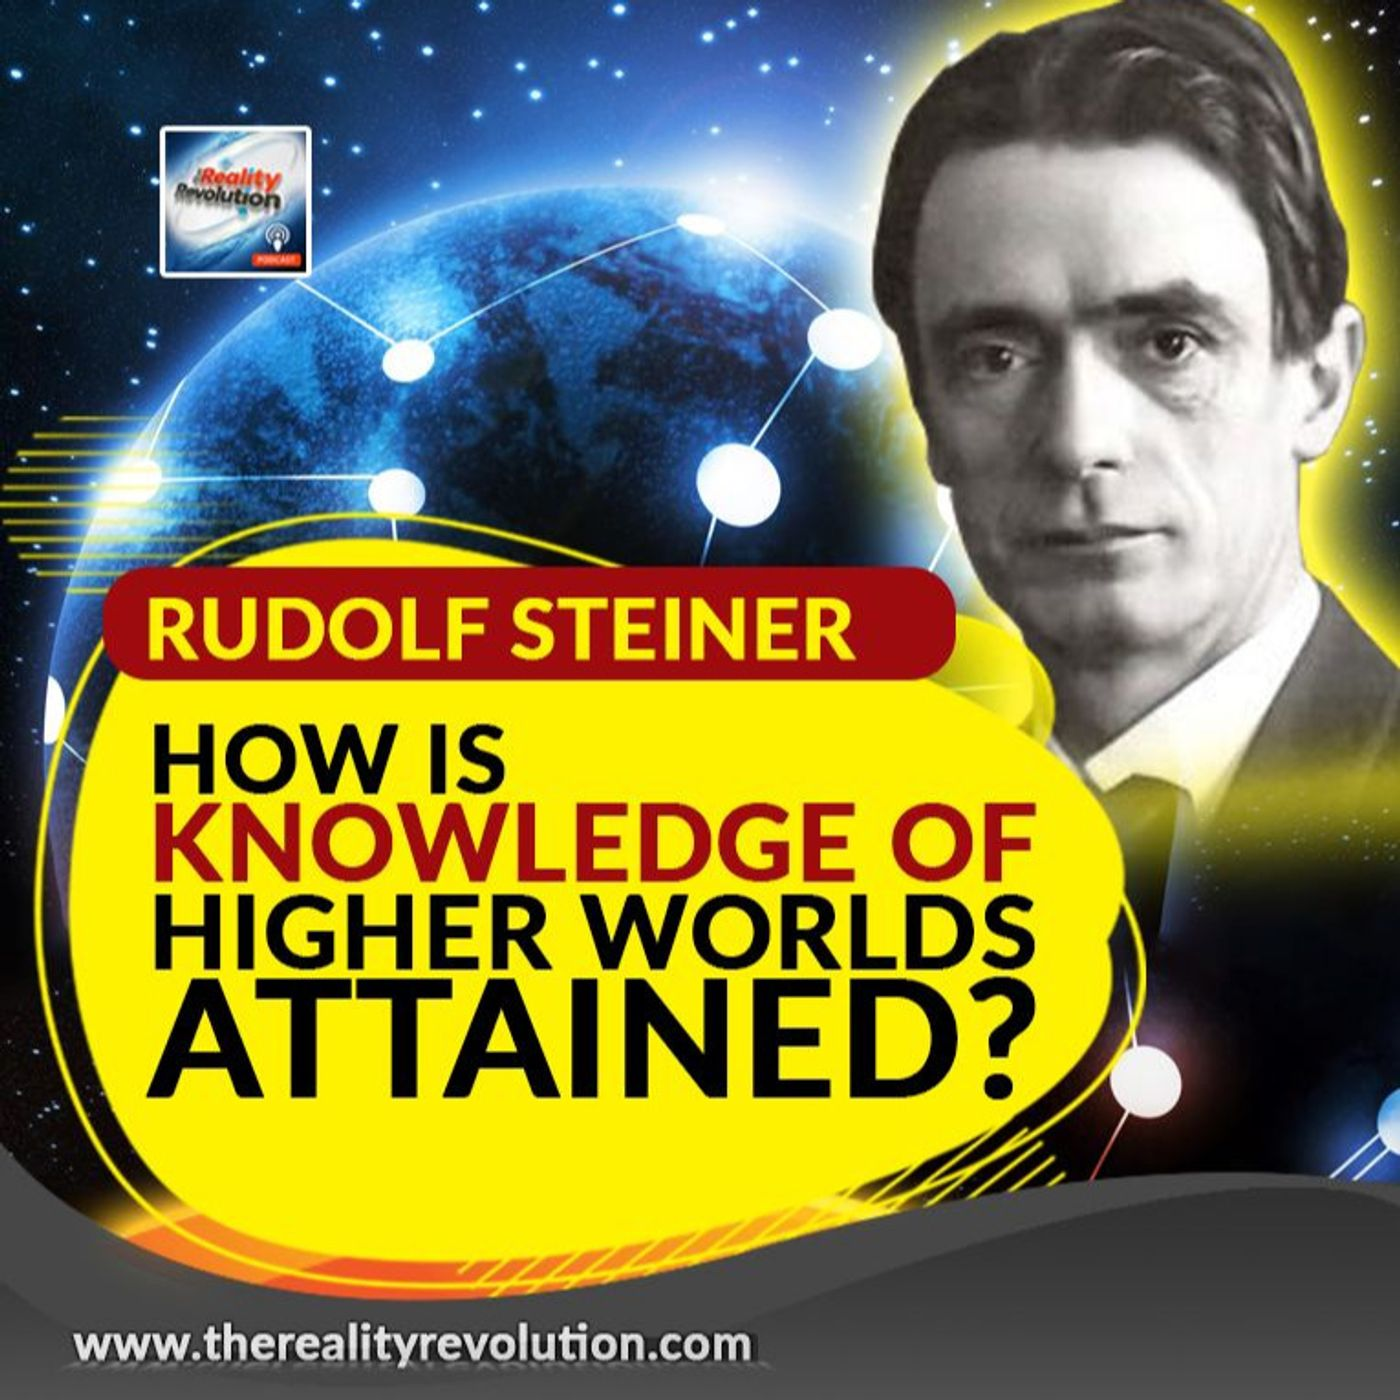 Rudolph Steiner - How Is Knowledge Of The Higher Worlds Attained?